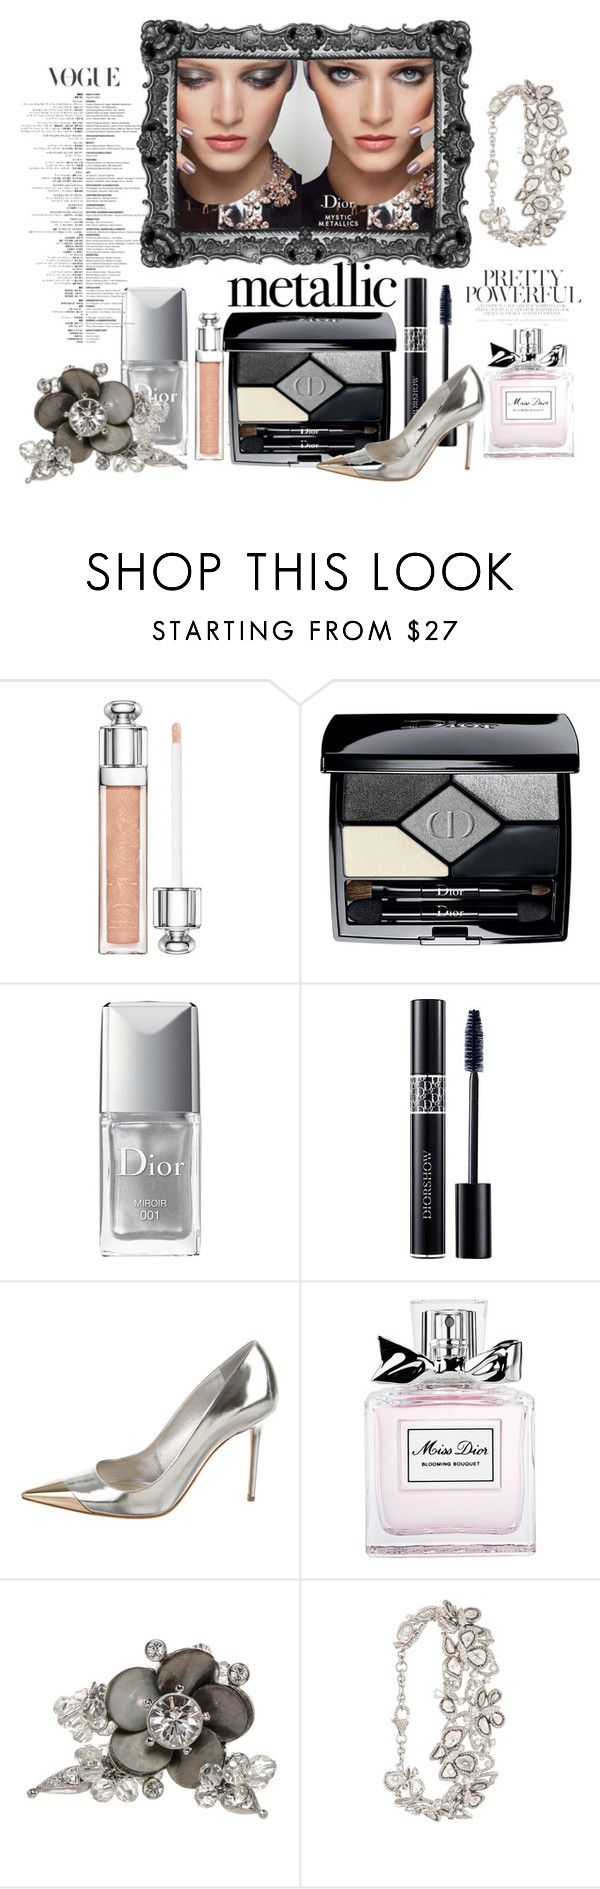 """Mystic Metallic Dior"" by iris234 on Polyvore featuring beauty, Christian Dior and Saqqara"